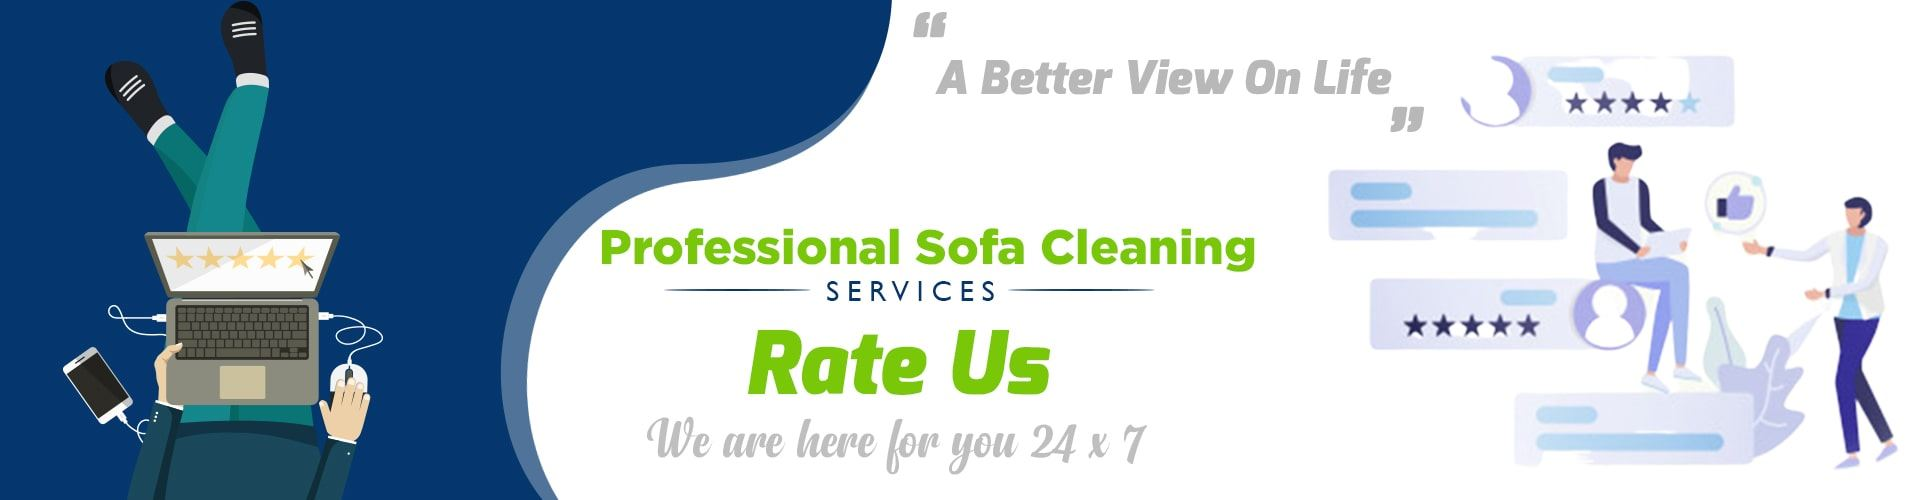 Professional Sofa Cleaning Services